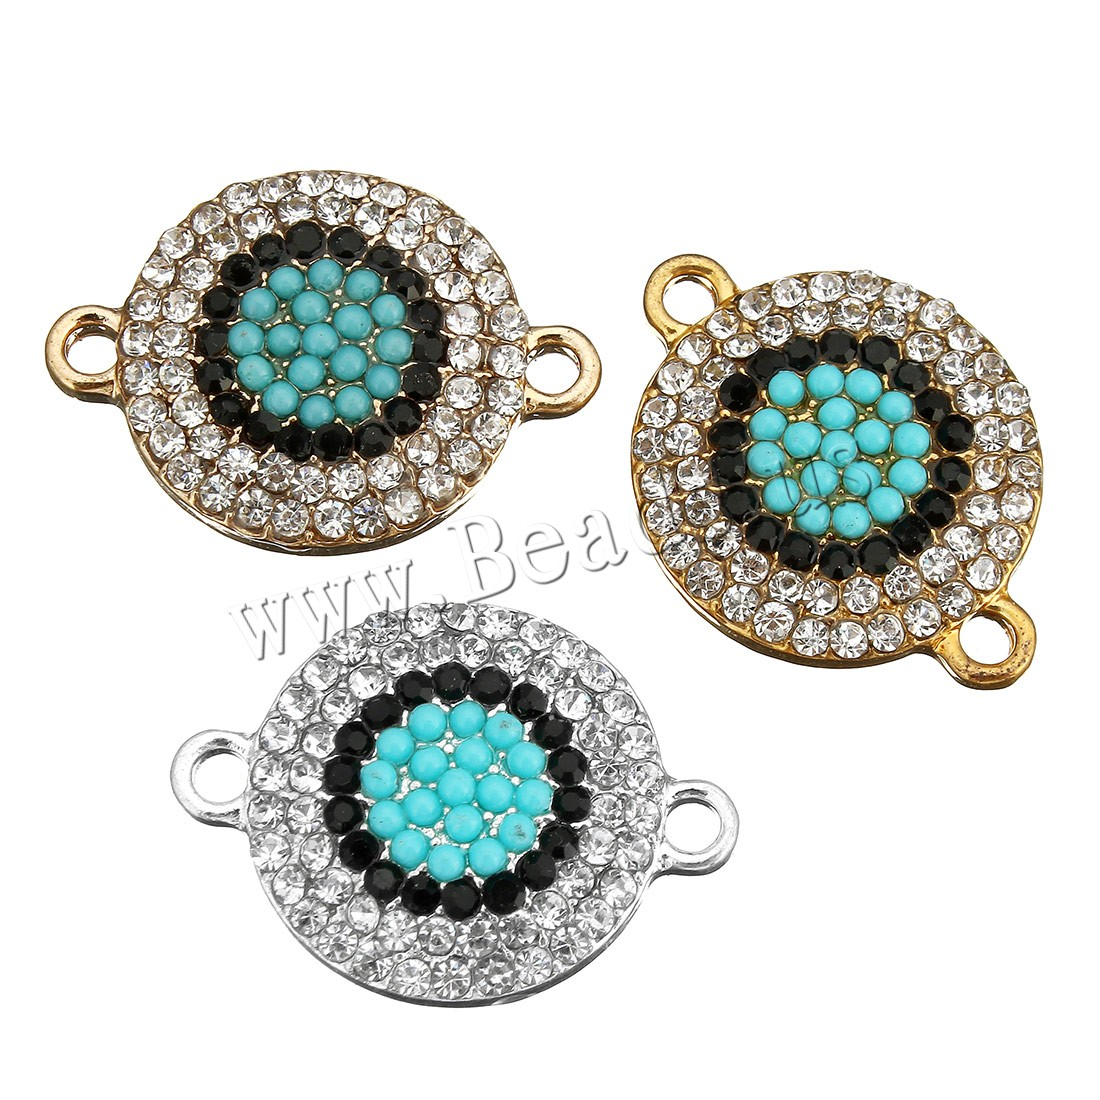 Buy Cubic Zirconia Micro Pave Brass Connector Glass Seed Beads Flat Round plated micro pave cubic zirconia & 1/1 loop colors choice 24x17x4mm Hole:Approx 2mm 5 Sold Lot